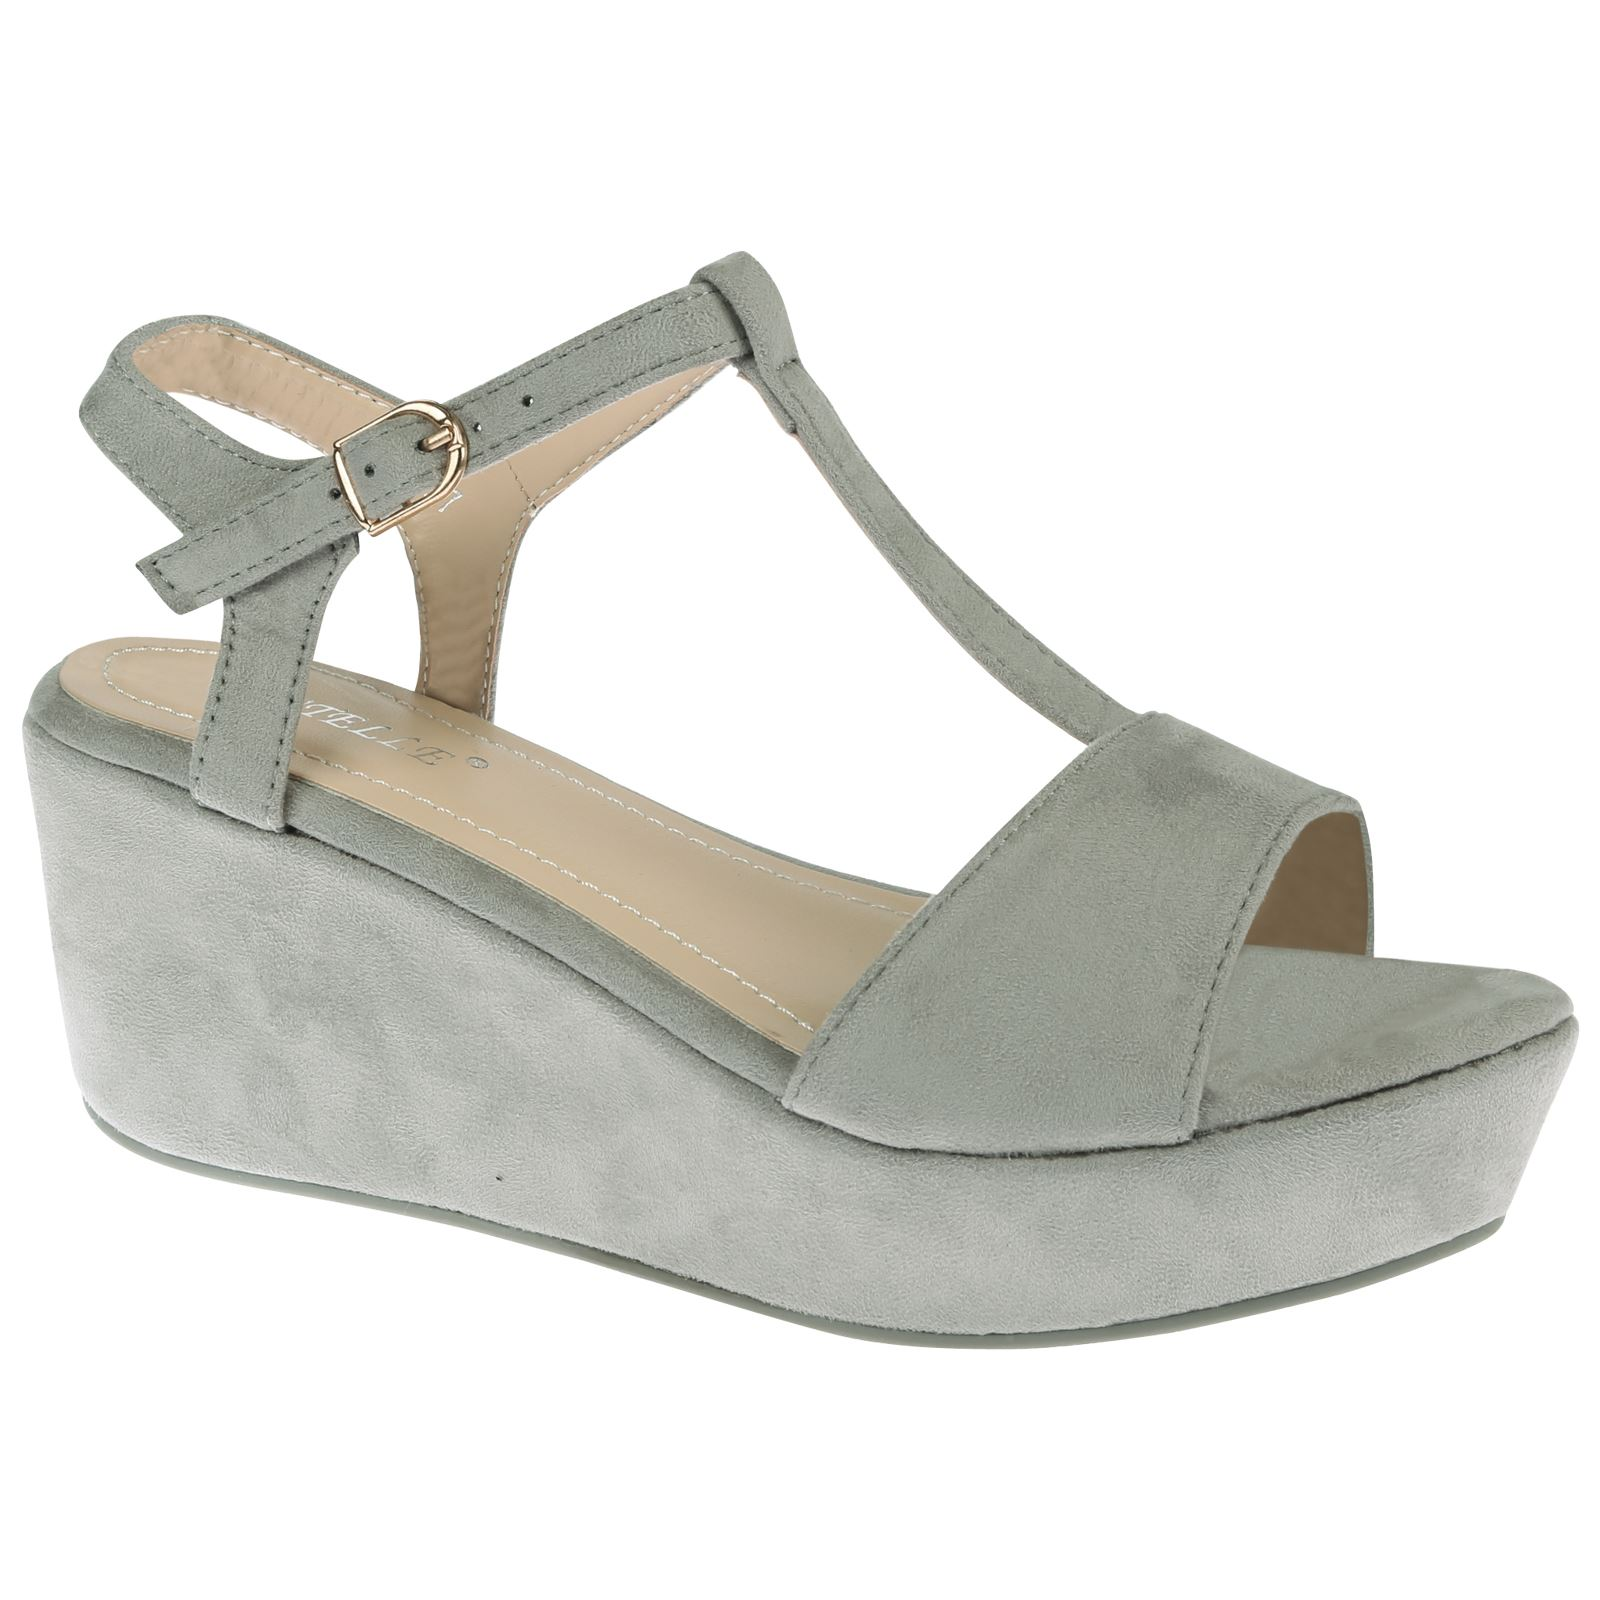 Moana-Womens-Mid-Wedges-Heels-T-Bar-Sandals-Ladies-Ankle-Strap-Style-Shoes-Size